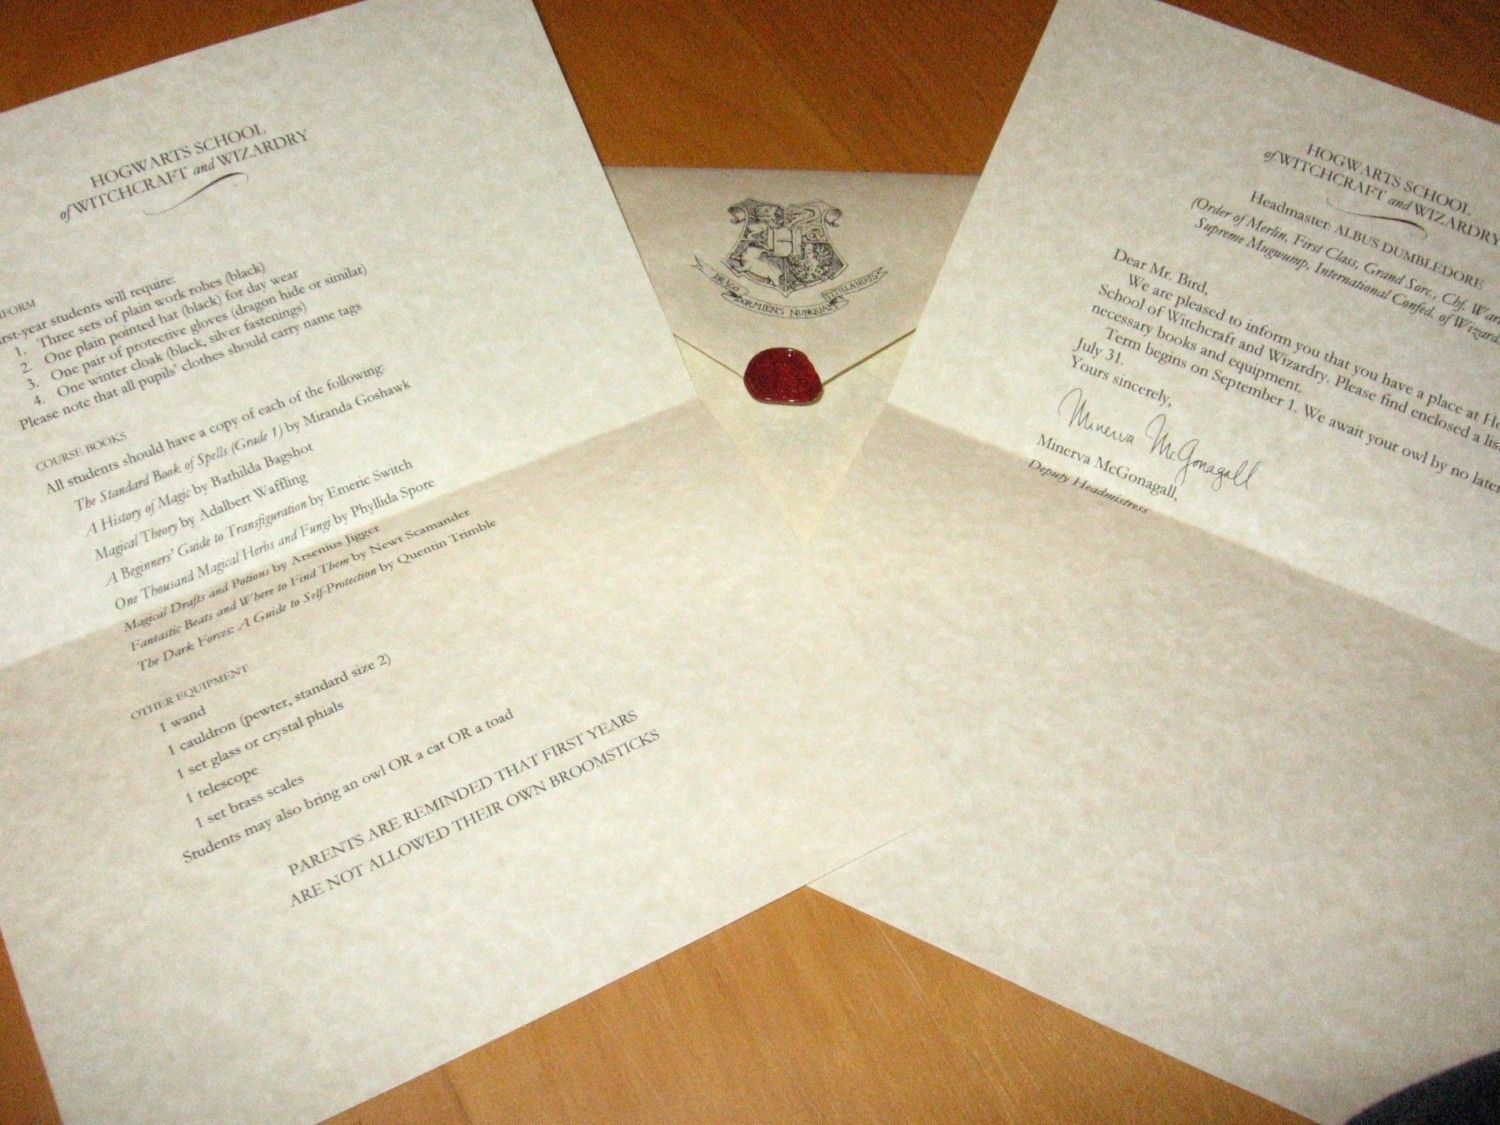 Receive My Hogwarts Acceptance Letter   Parts Of Me